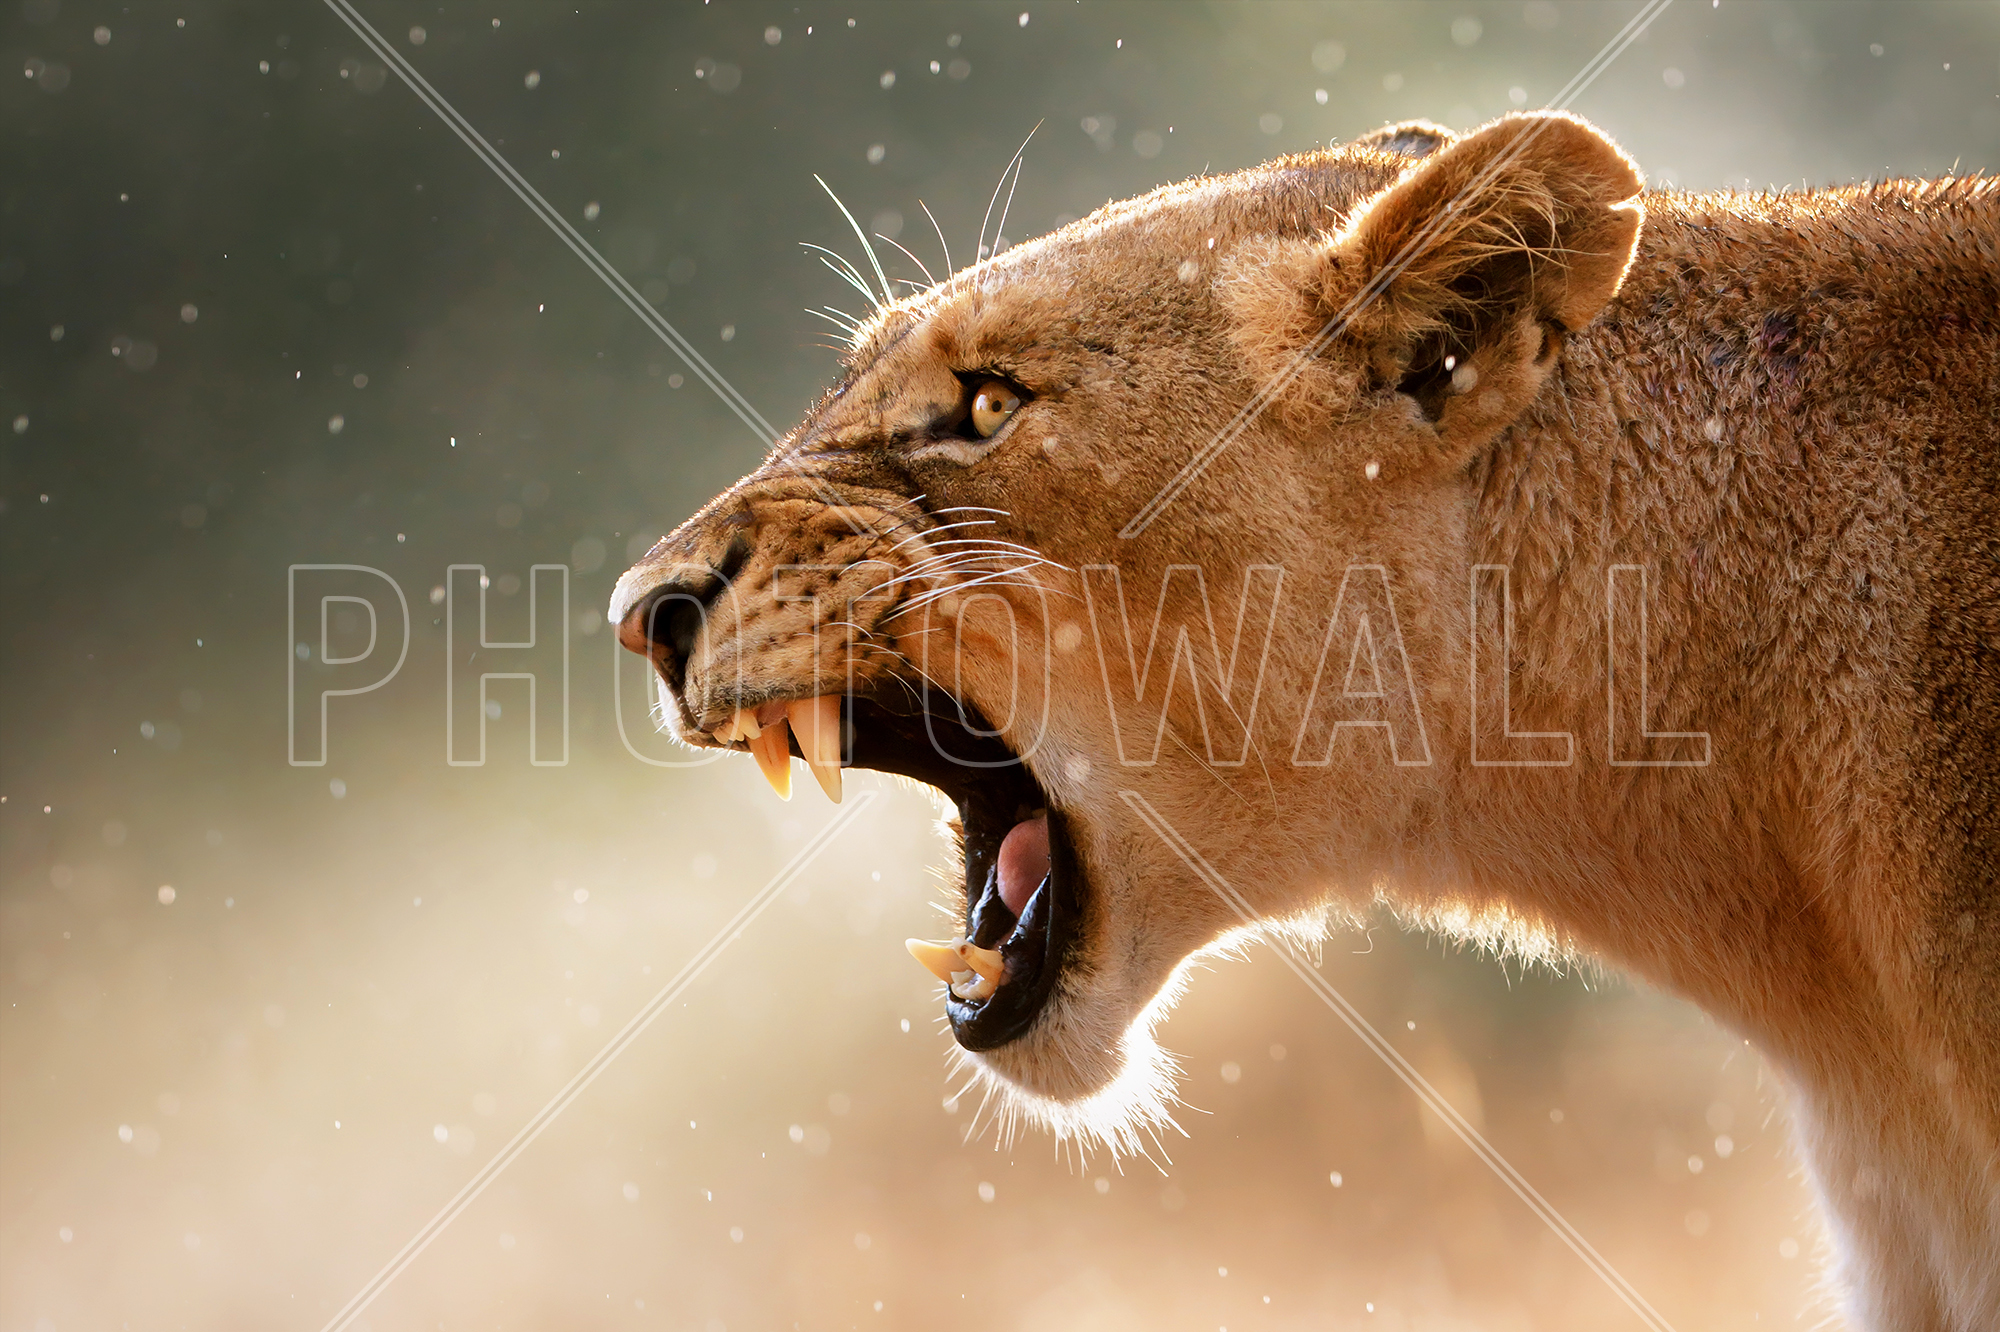 Mgm Lion Roar Sound Effect Pictures to Pin on Pinterest ... - photo#34